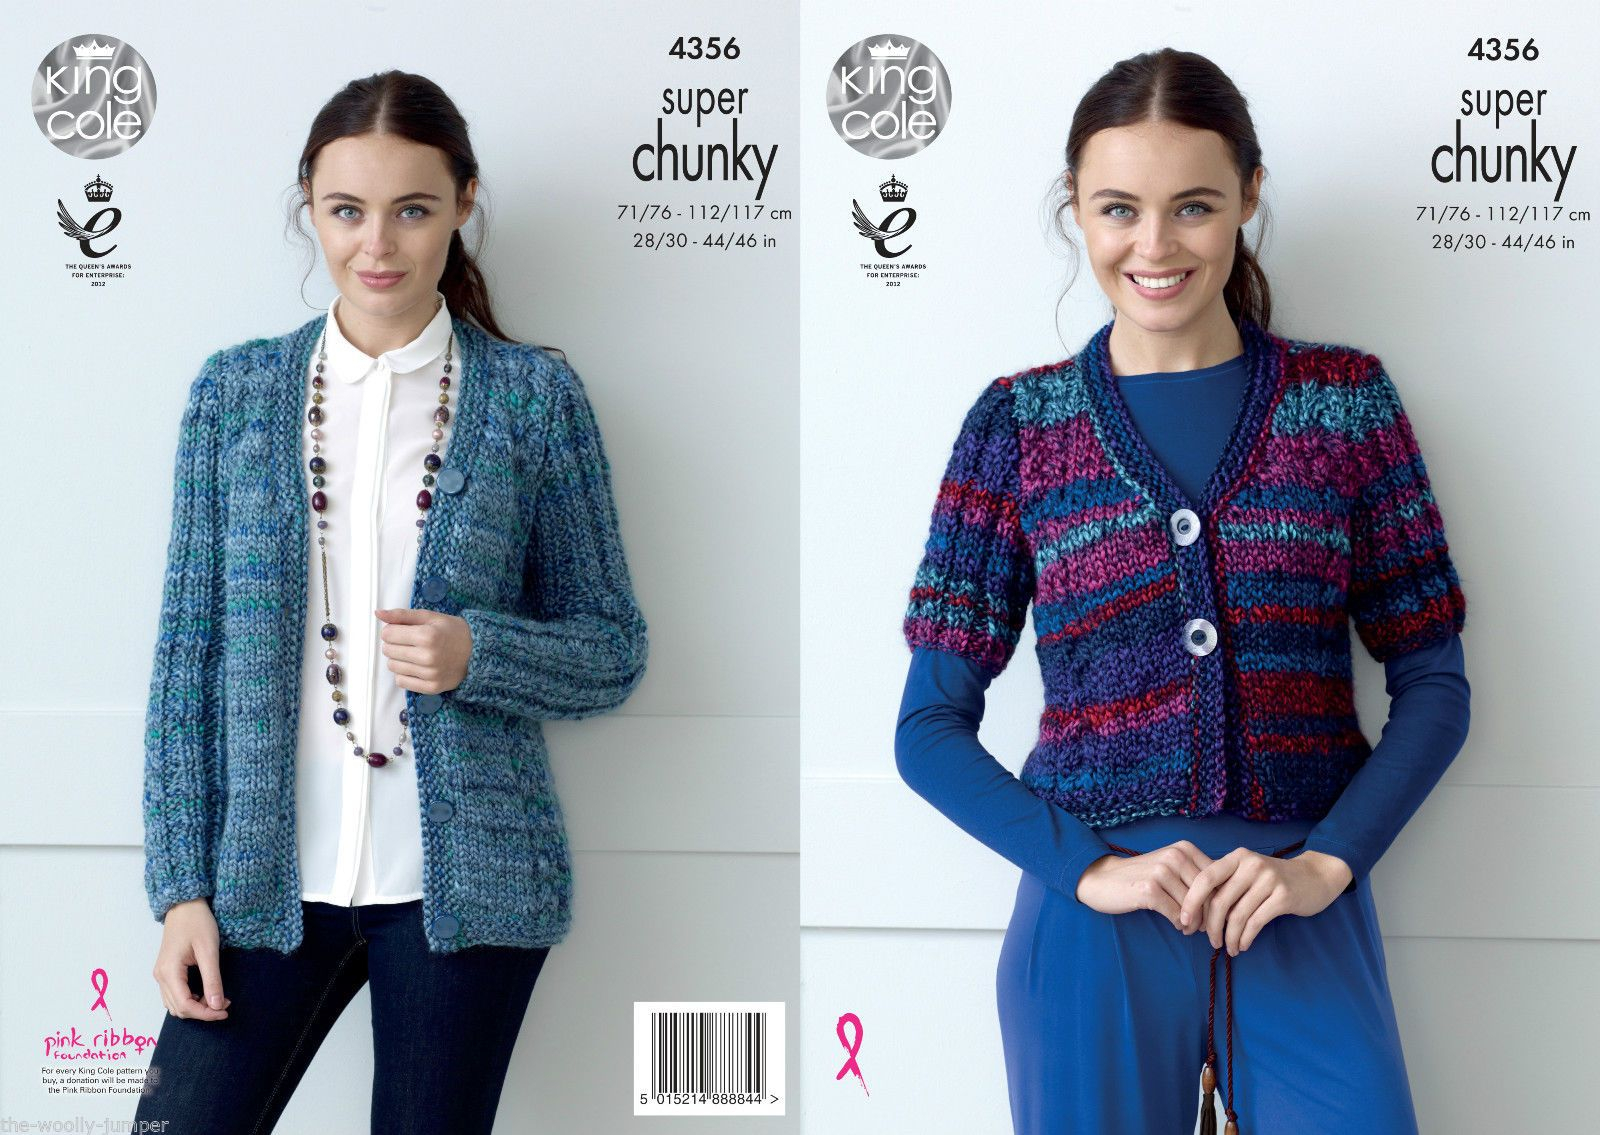 4356 - KING COLE GYPSY SUPER CHUNKY CARDIGAN KNITTING ...